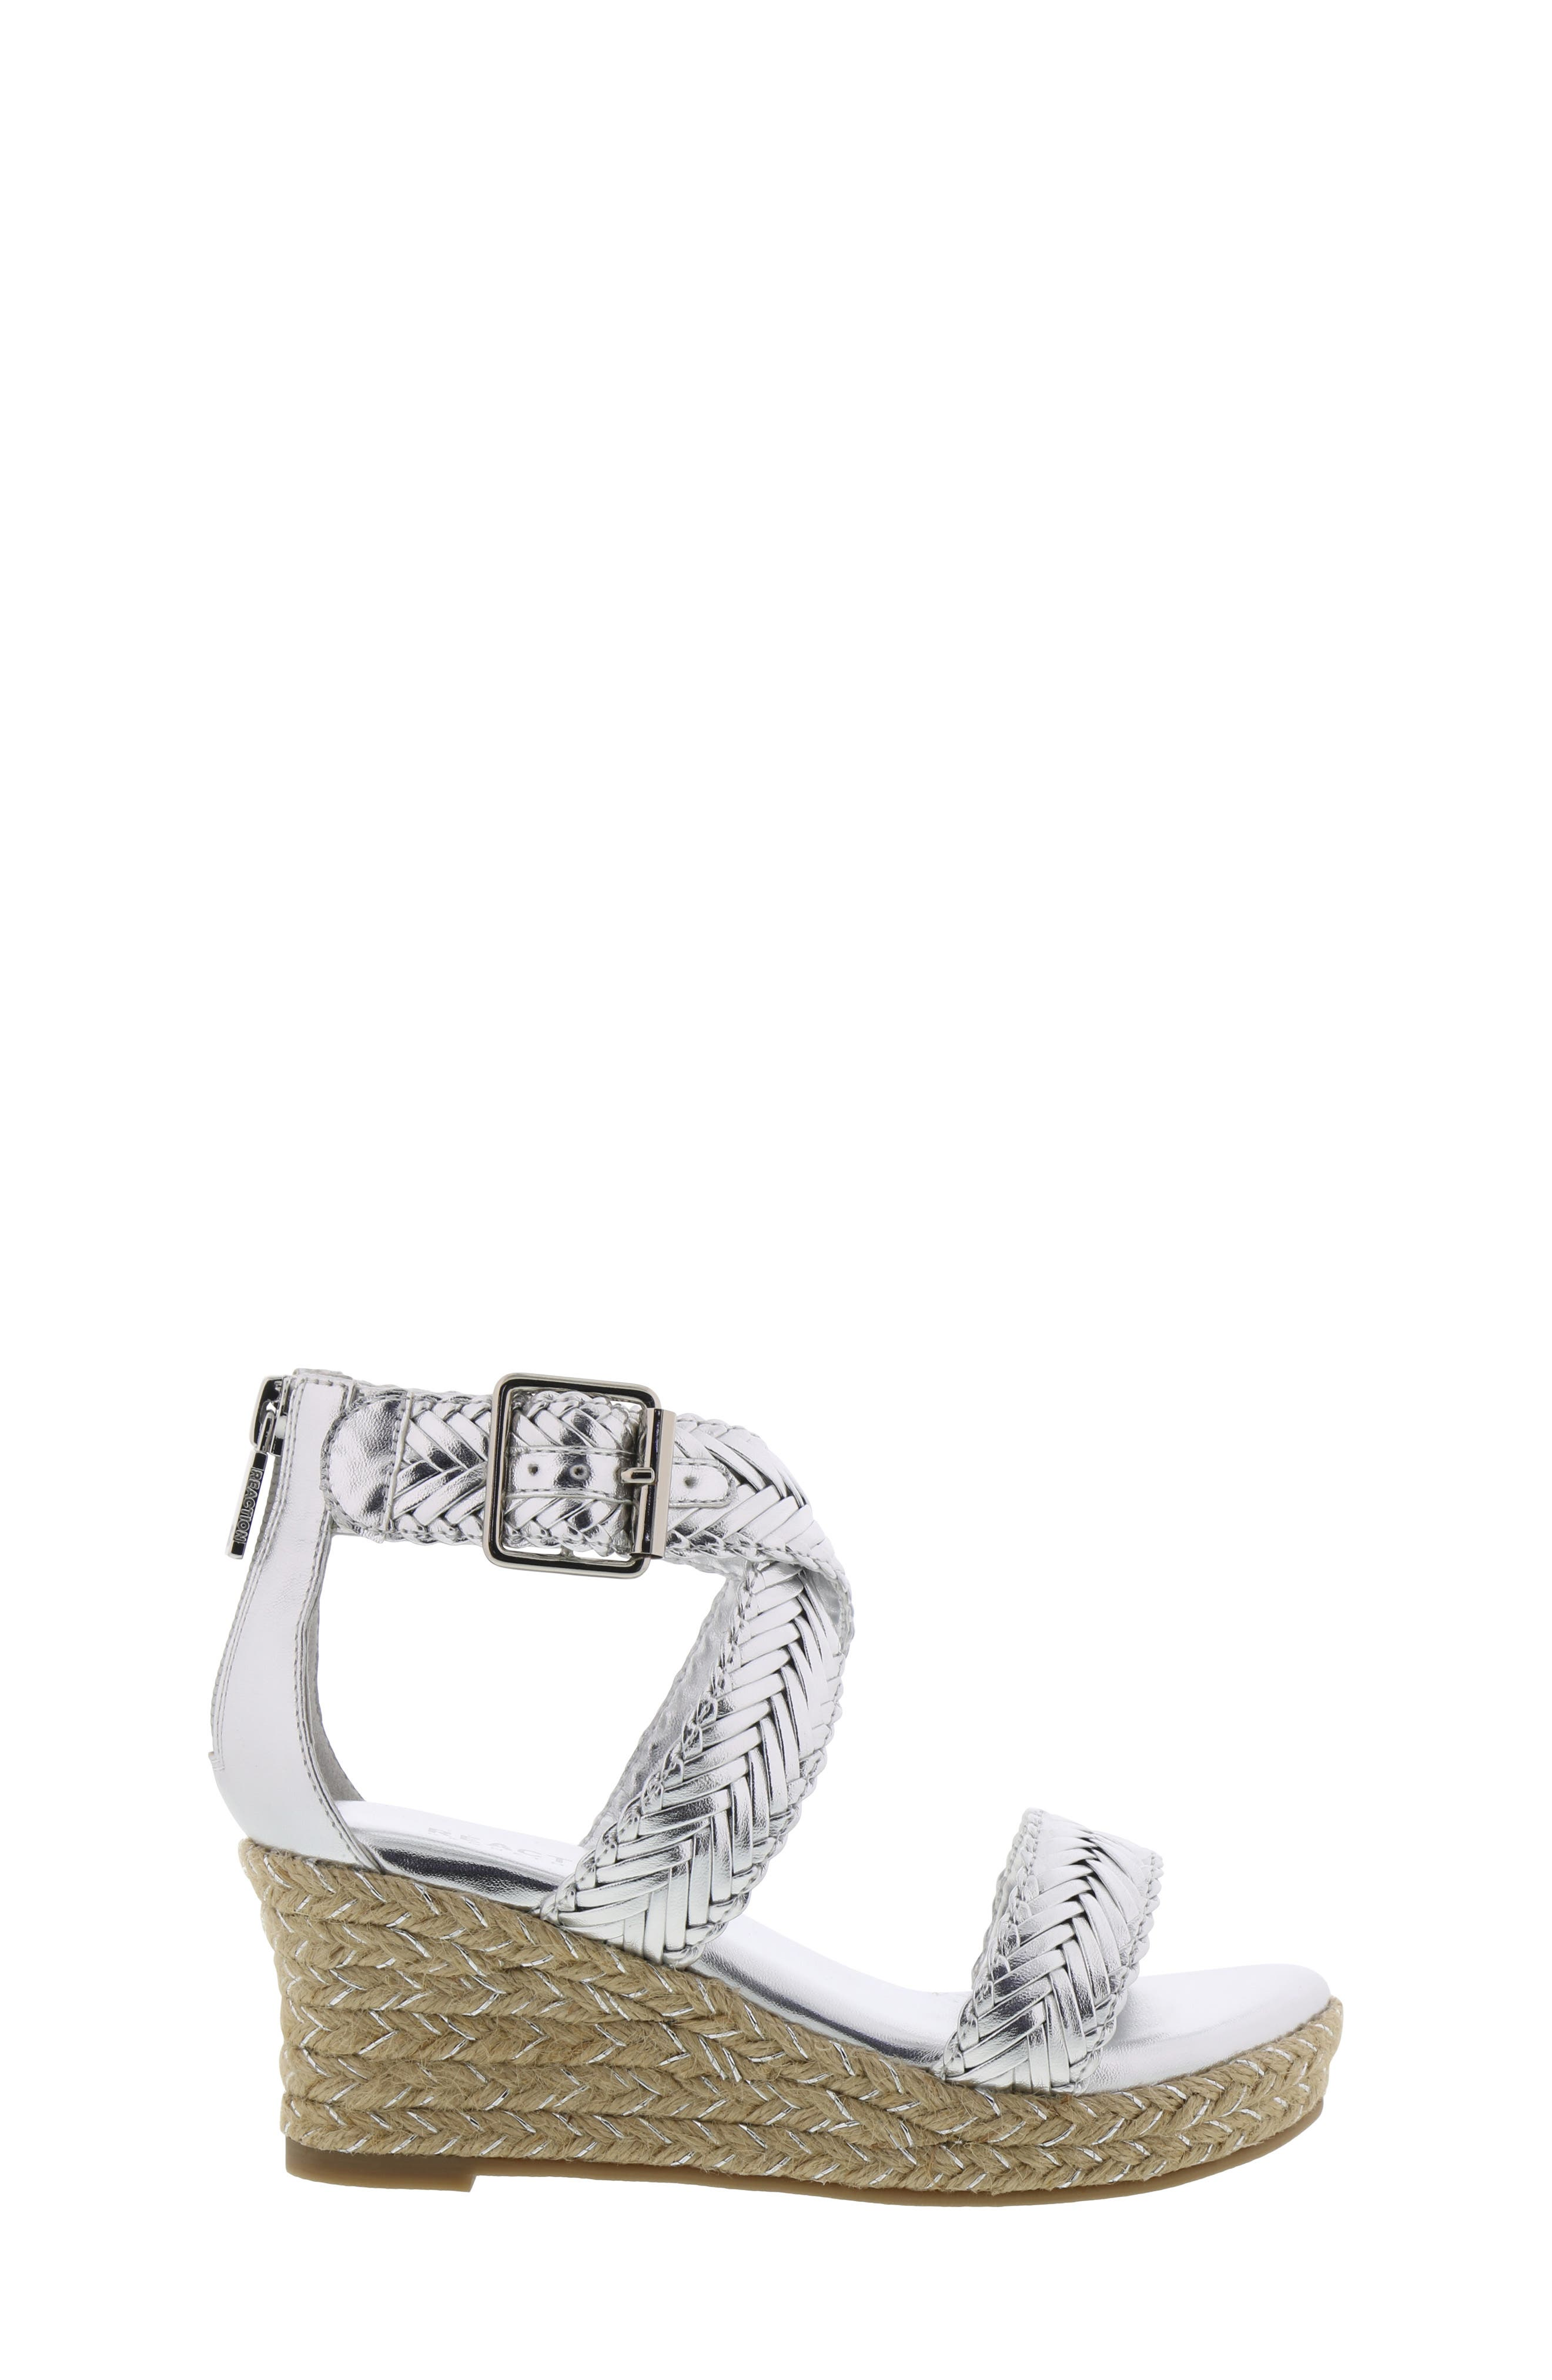 REACTION KENNETH COLE, Reed Sway Metallic Wedge Sandal, Alternate thumbnail 3, color, SILVER